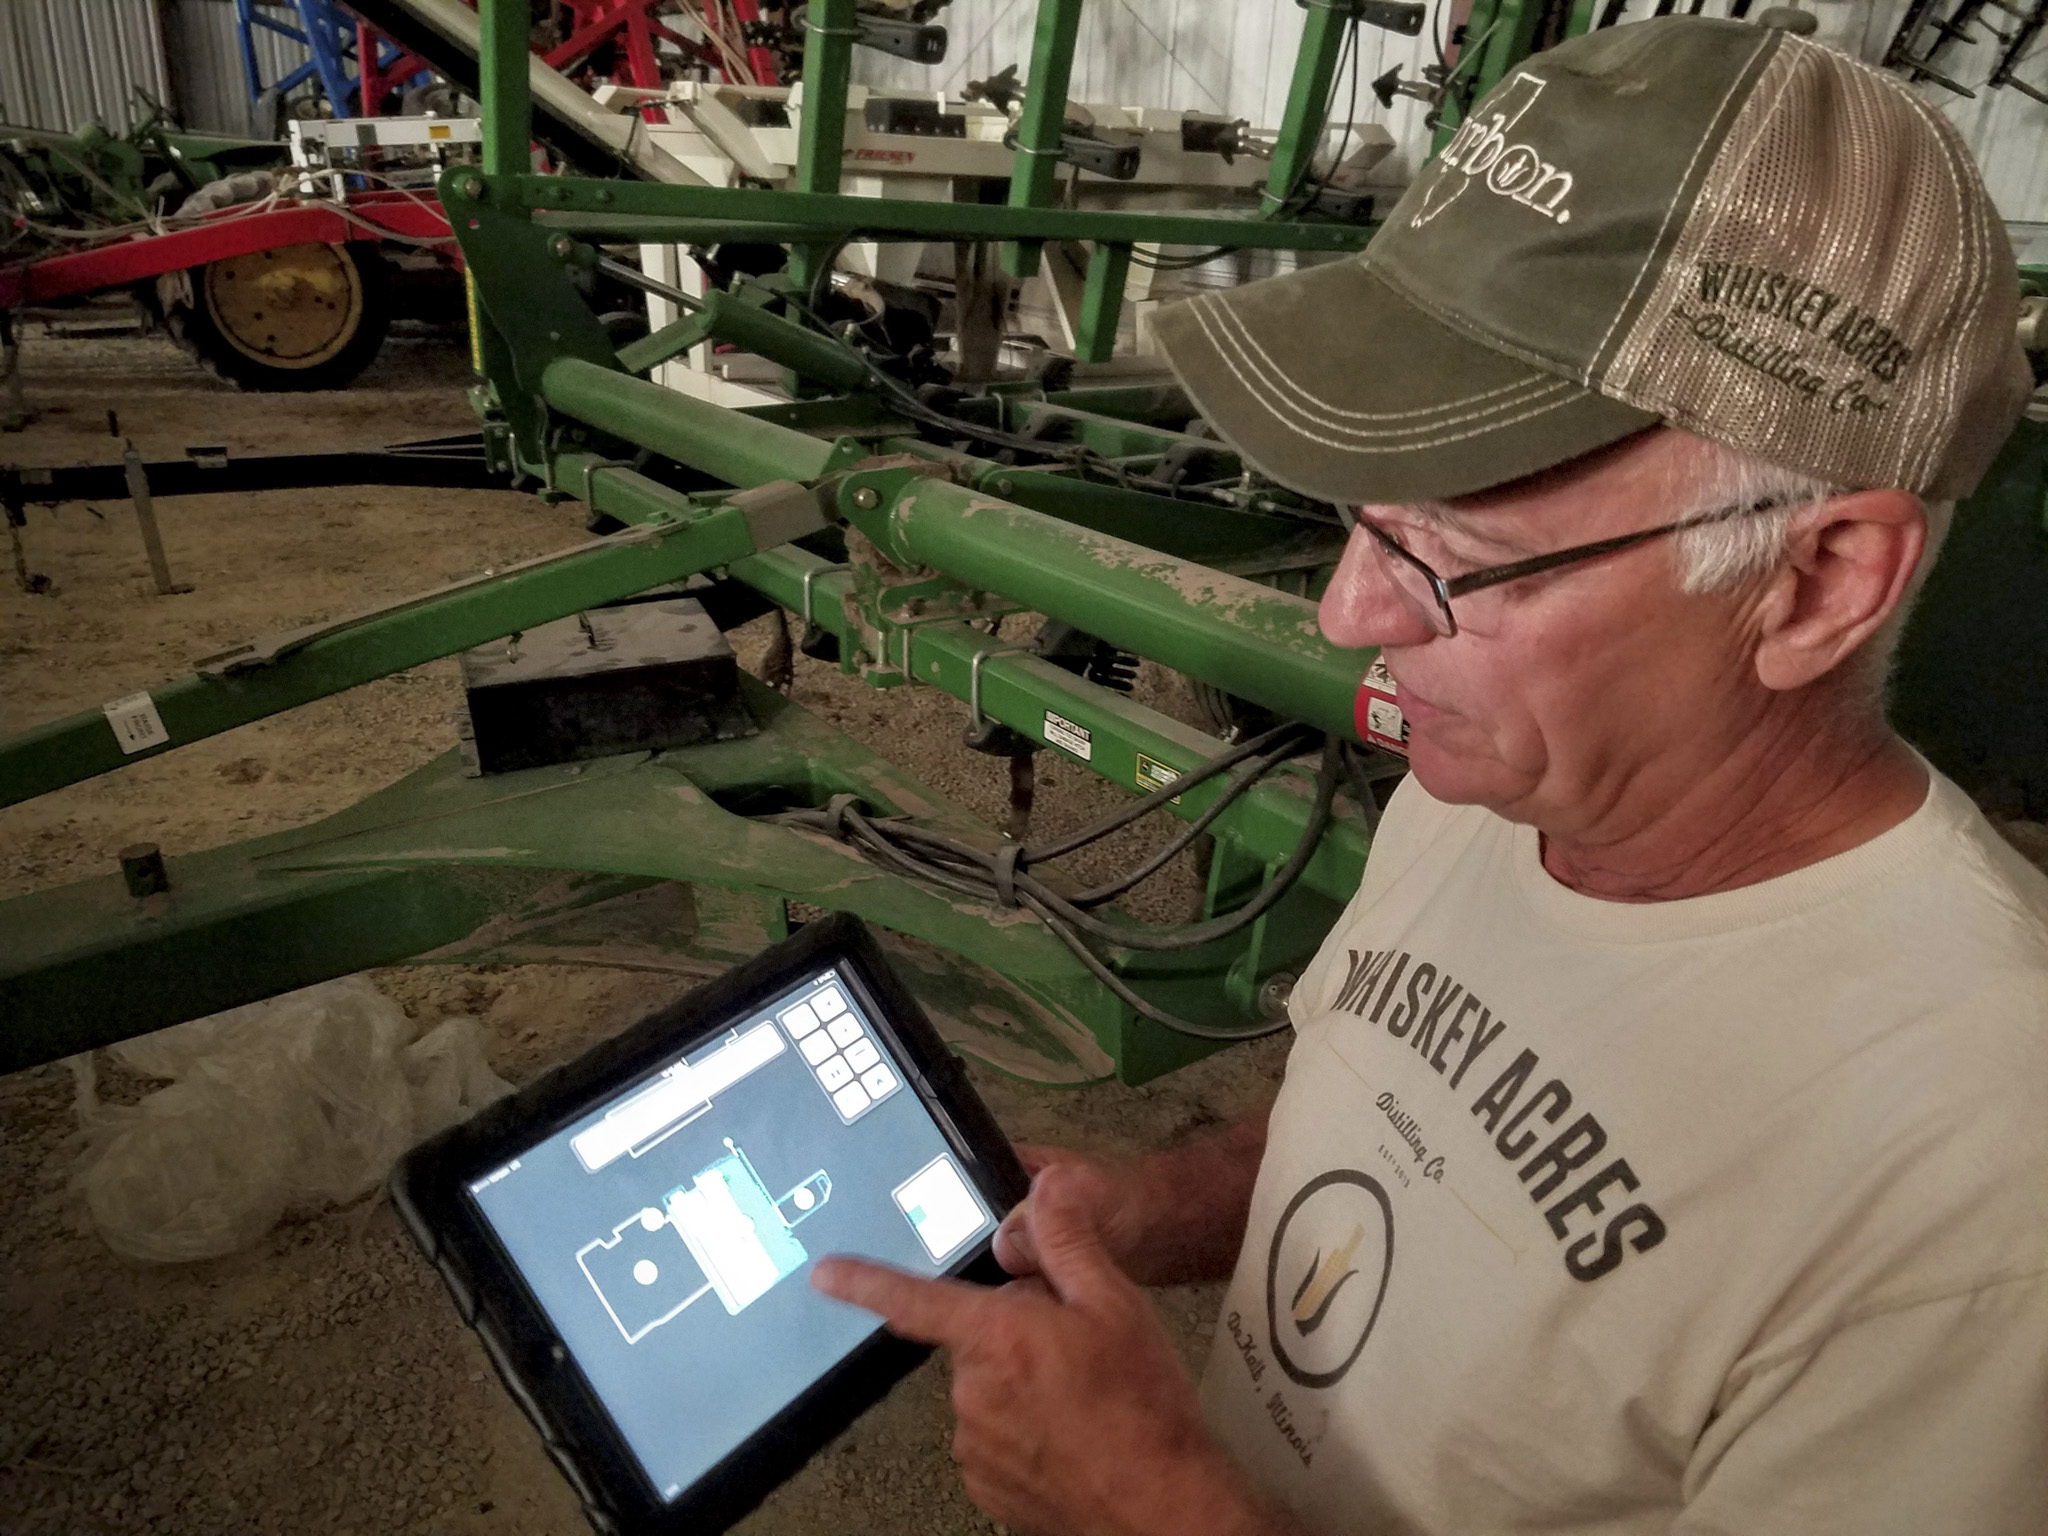 Jim Walter showing us the iPad used to control the farm equipment and monitor every aspect of their crops.